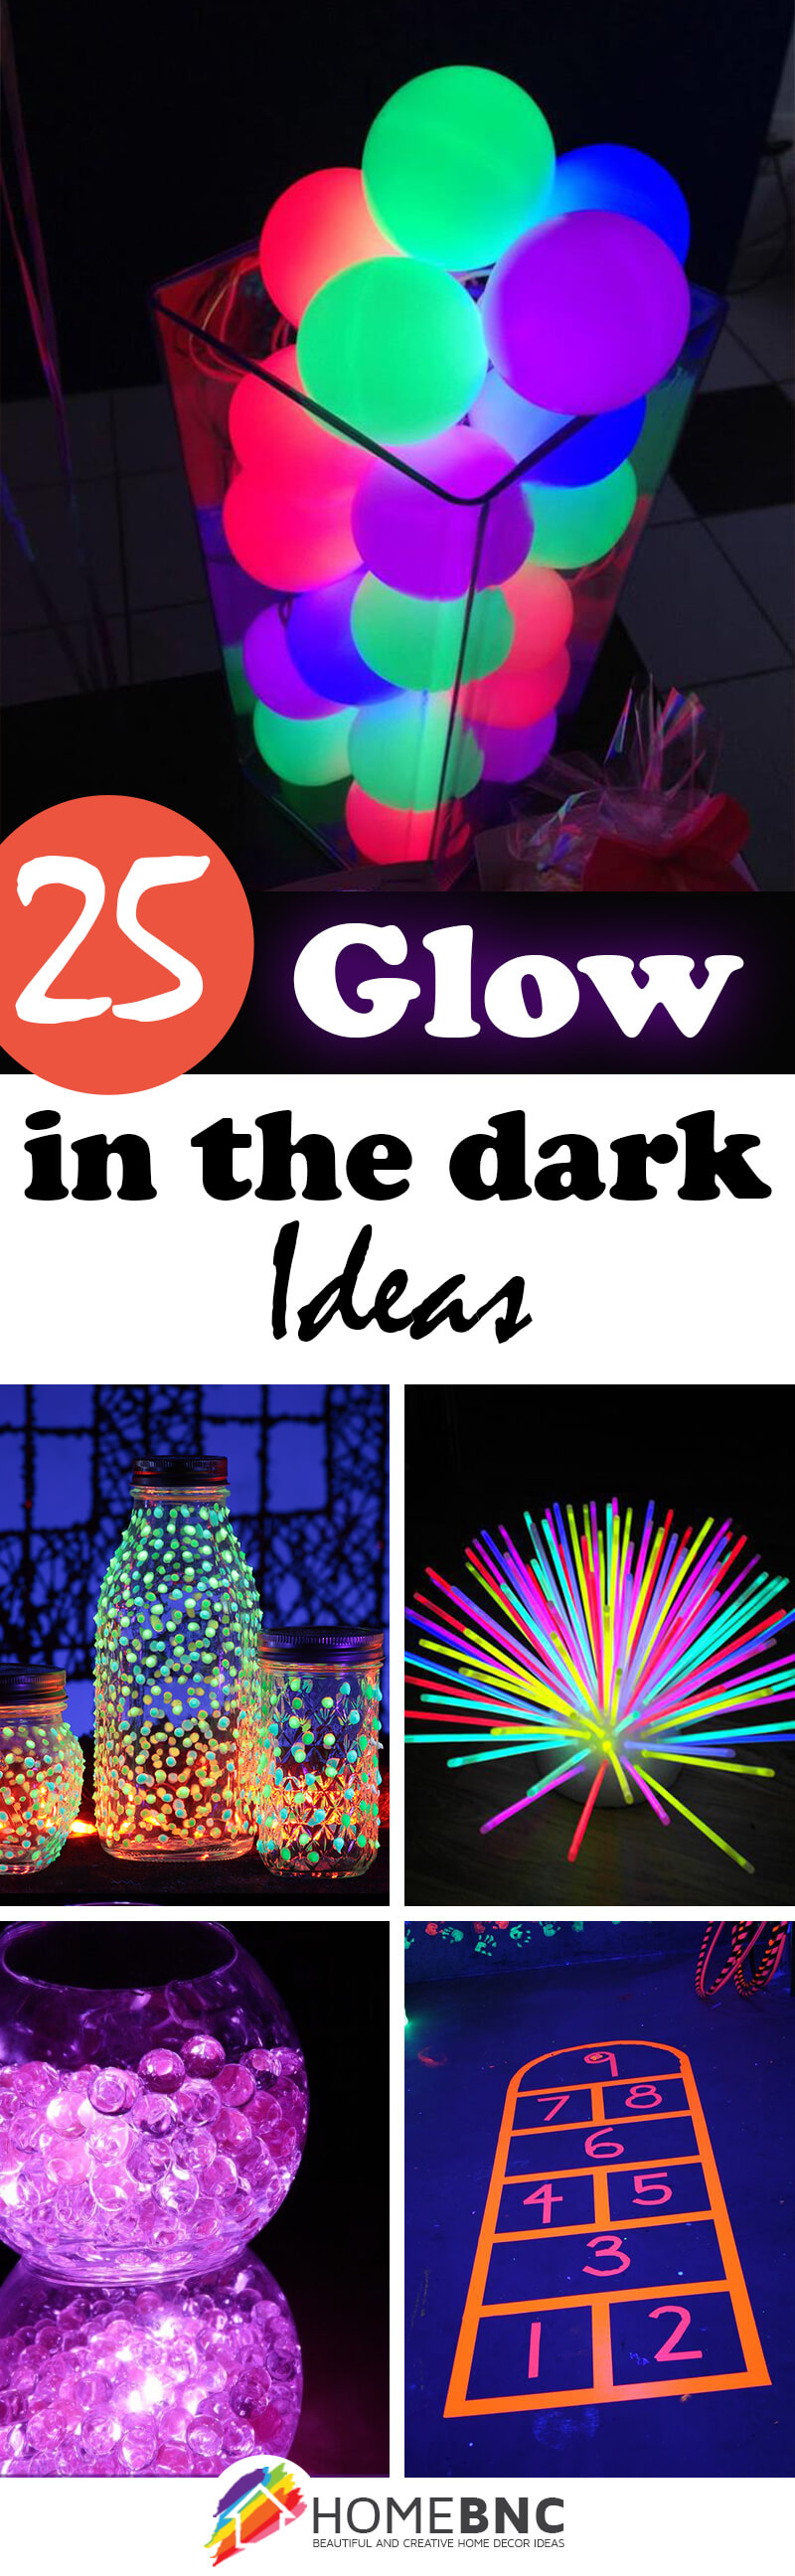 25 Best Glow In The Dark Ideas And Designs For 2021